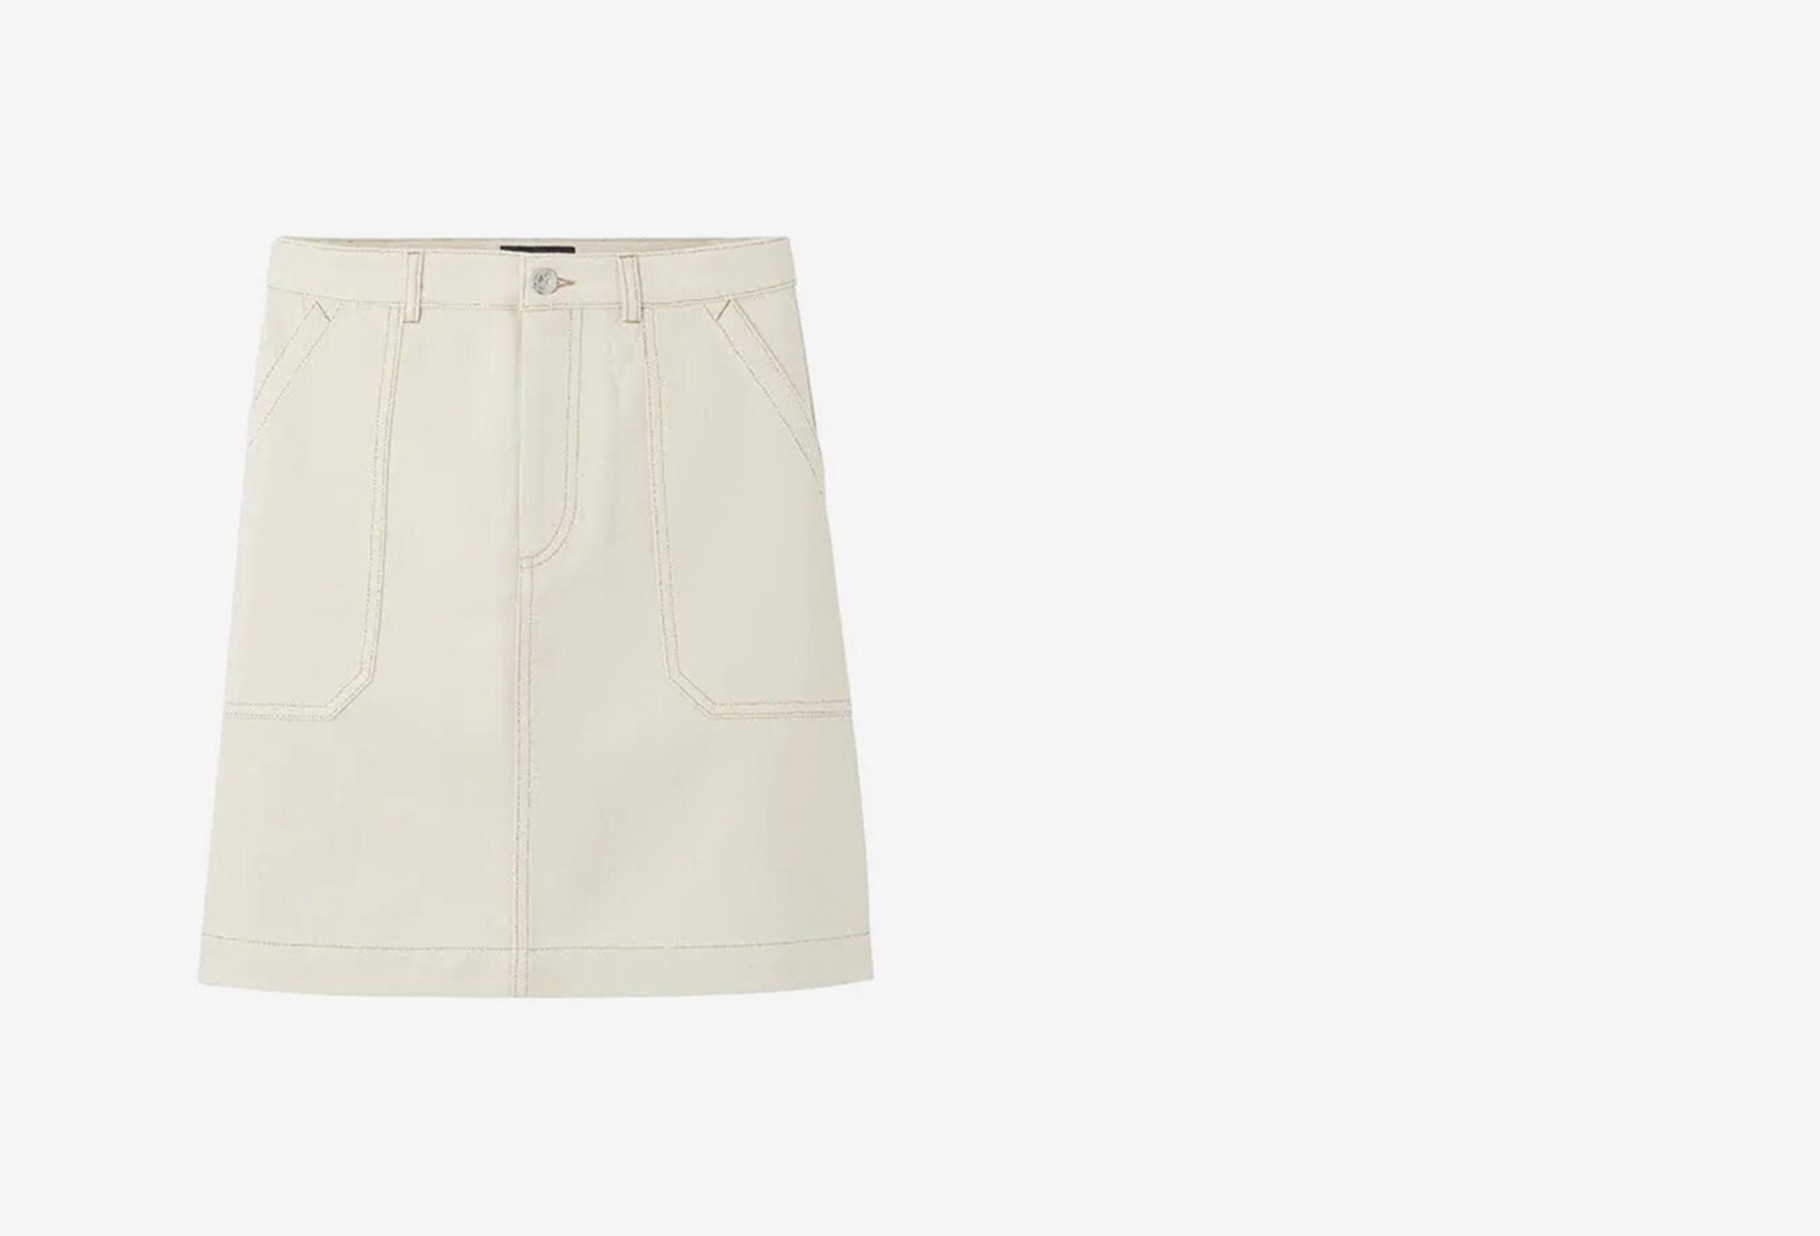 A.P.C. FOR WOMAN / Jupe lea Blanc